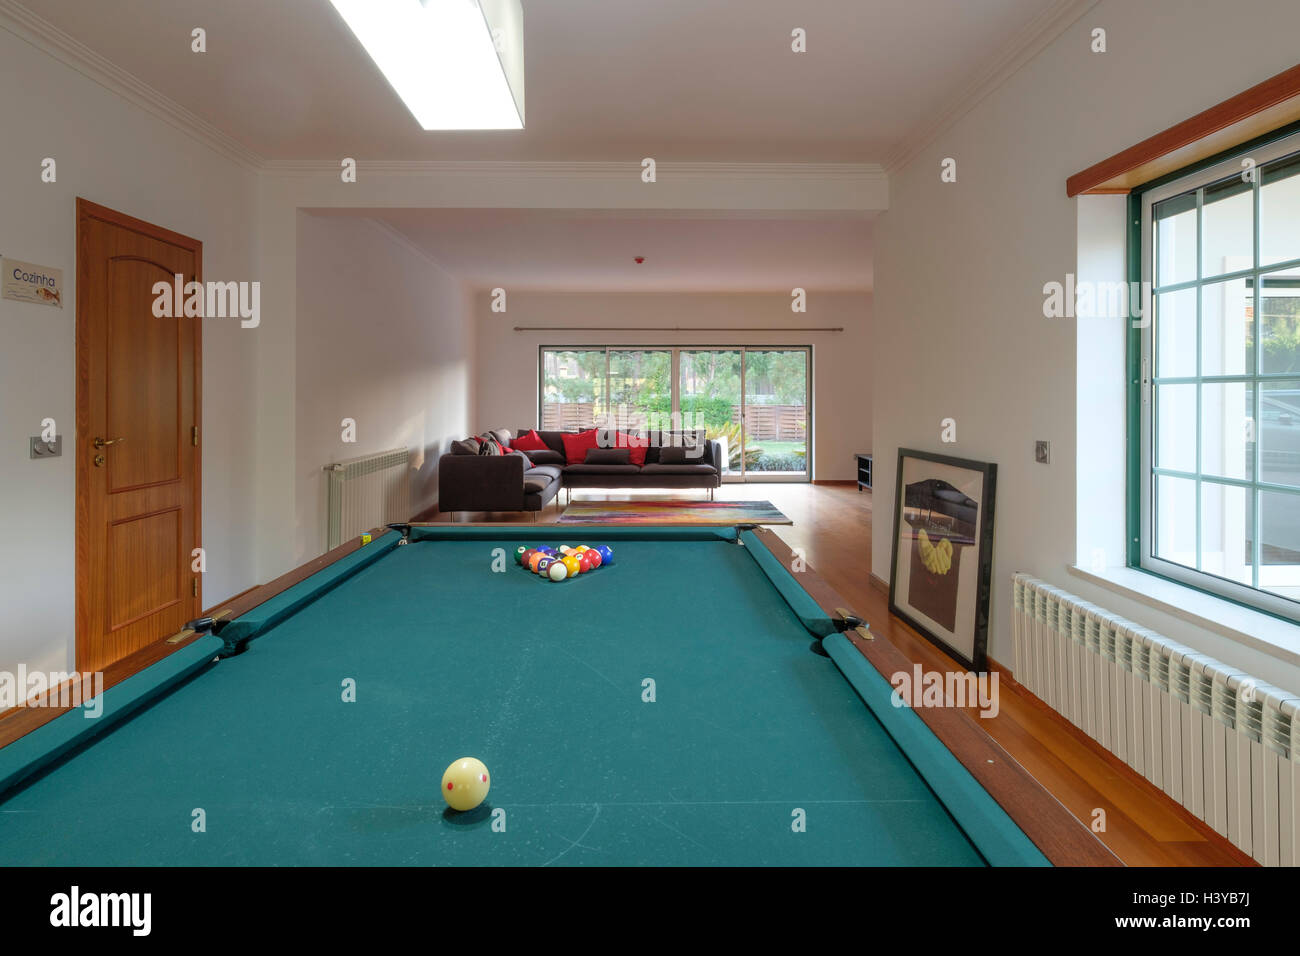 Billiards table in game room at home - Stock Image